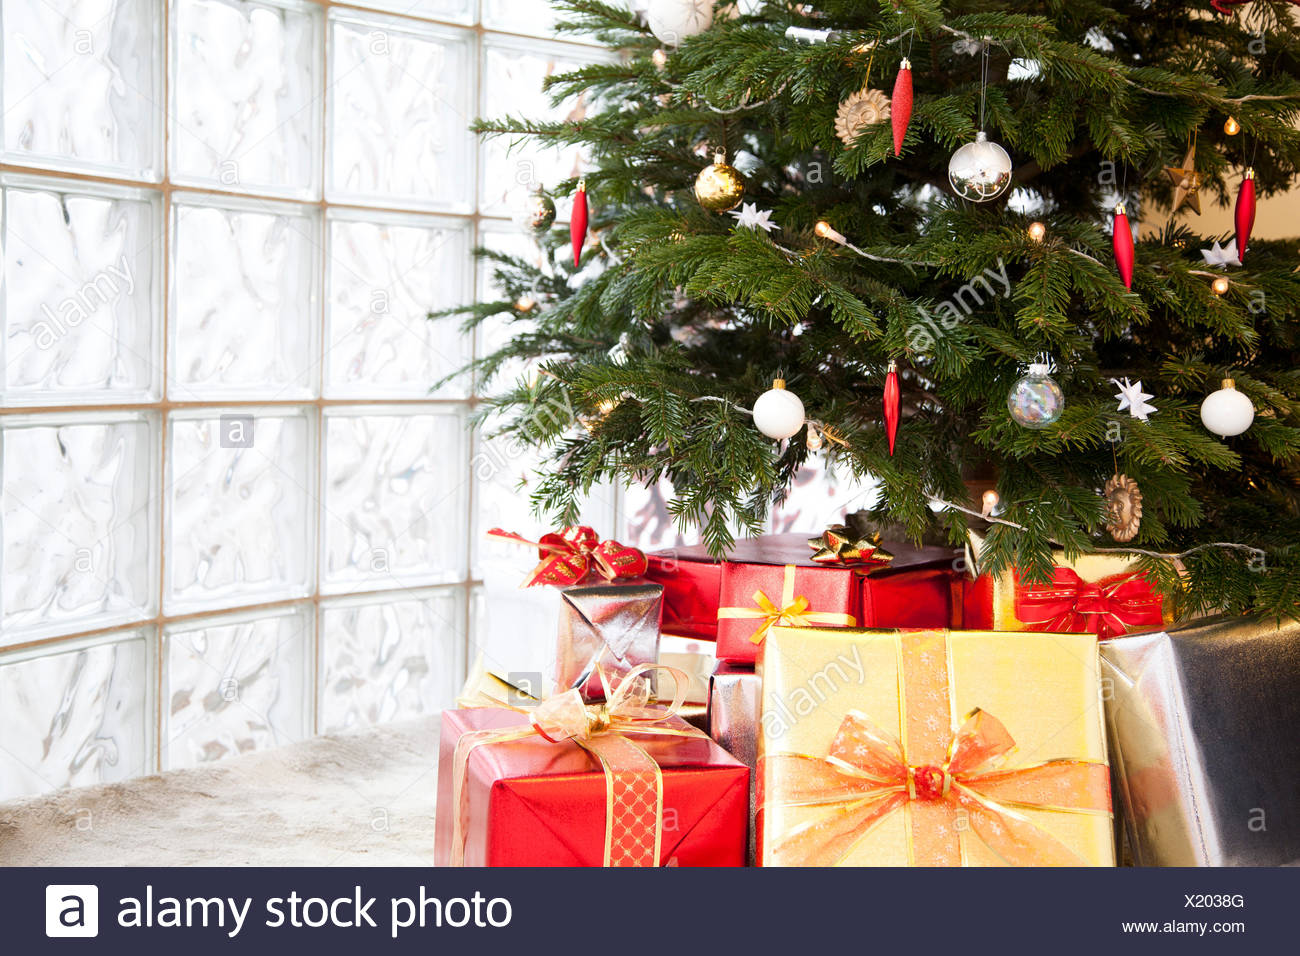 Close up of gifts under a Christmas tree - Stock Image